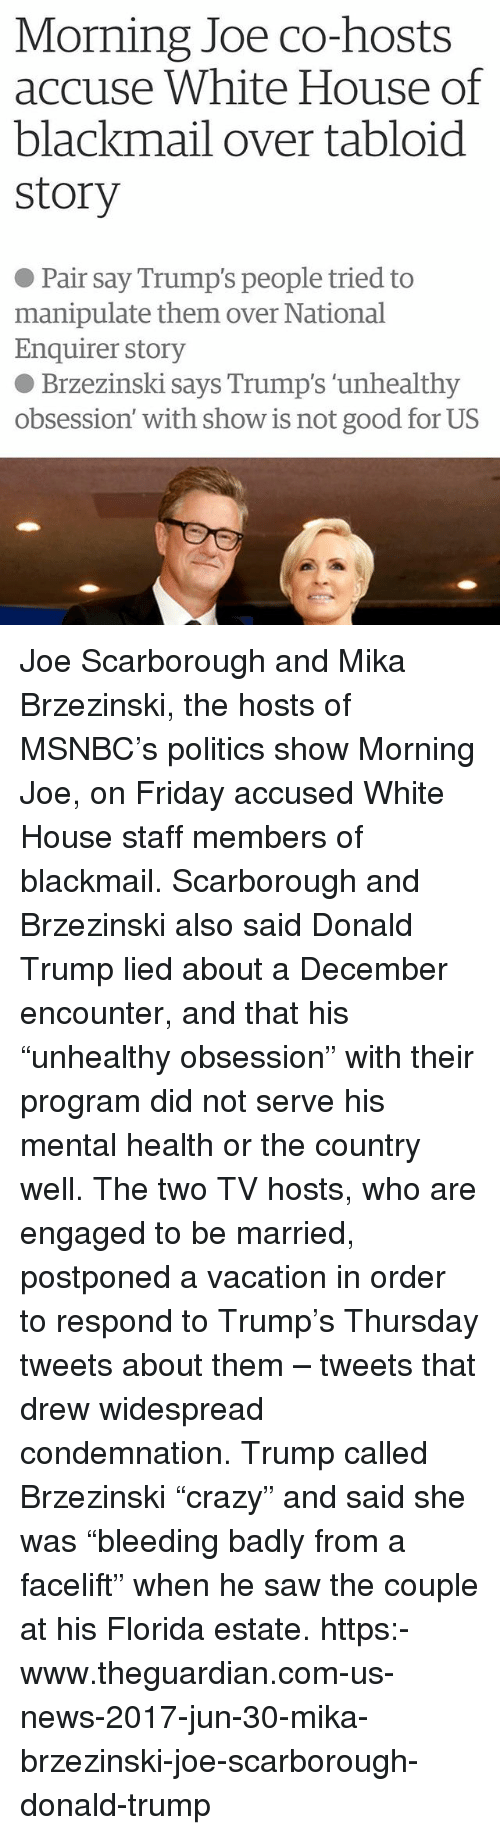 """Donald Trump, Friday, and Memes: Morning Joe co-hosts  accuse White House of  blackmail over tabloid  story  ● Pair say Trump's people tried to  manipulate them over National  Enquirer story  ● Brzezinski says Trump's 'unhealthy  obsession' with show is not good for US Joe Scarborough and Mika Brzezinski, the hosts of MSNBC's politics show Morning Joe, on Friday accused White House staff members of blackmail. Scarborough and Brzezinski also said Donald Trump lied about a December encounter, and that his """"unhealthy obsession"""" with their program did not serve his mental health or the country well. The two TV hosts, who are engaged to be married, postponed a vacation in order to respond to Trump's Thursday tweets about them – tweets that drew widespread condemnation. Trump called Brzezinski """"crazy"""" and said she was """"bleeding badly from a facelift"""" when he saw the couple at his Florida estate. https:-www.theguardian.com-us-news-2017-jun-30-mika-brzezinski-joe-scarborough-donald-trump"""